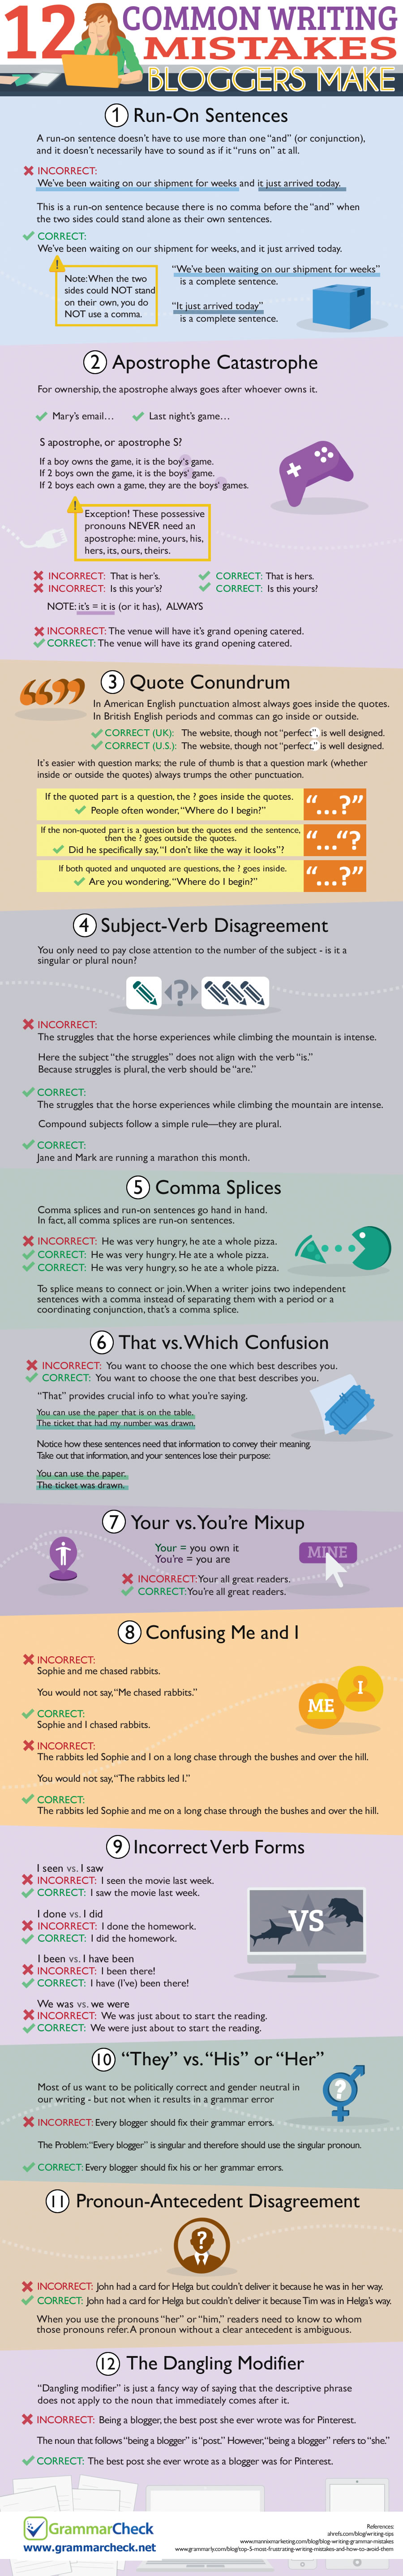 12 Common Writing Mistakes Bloggers Make (Infographic)